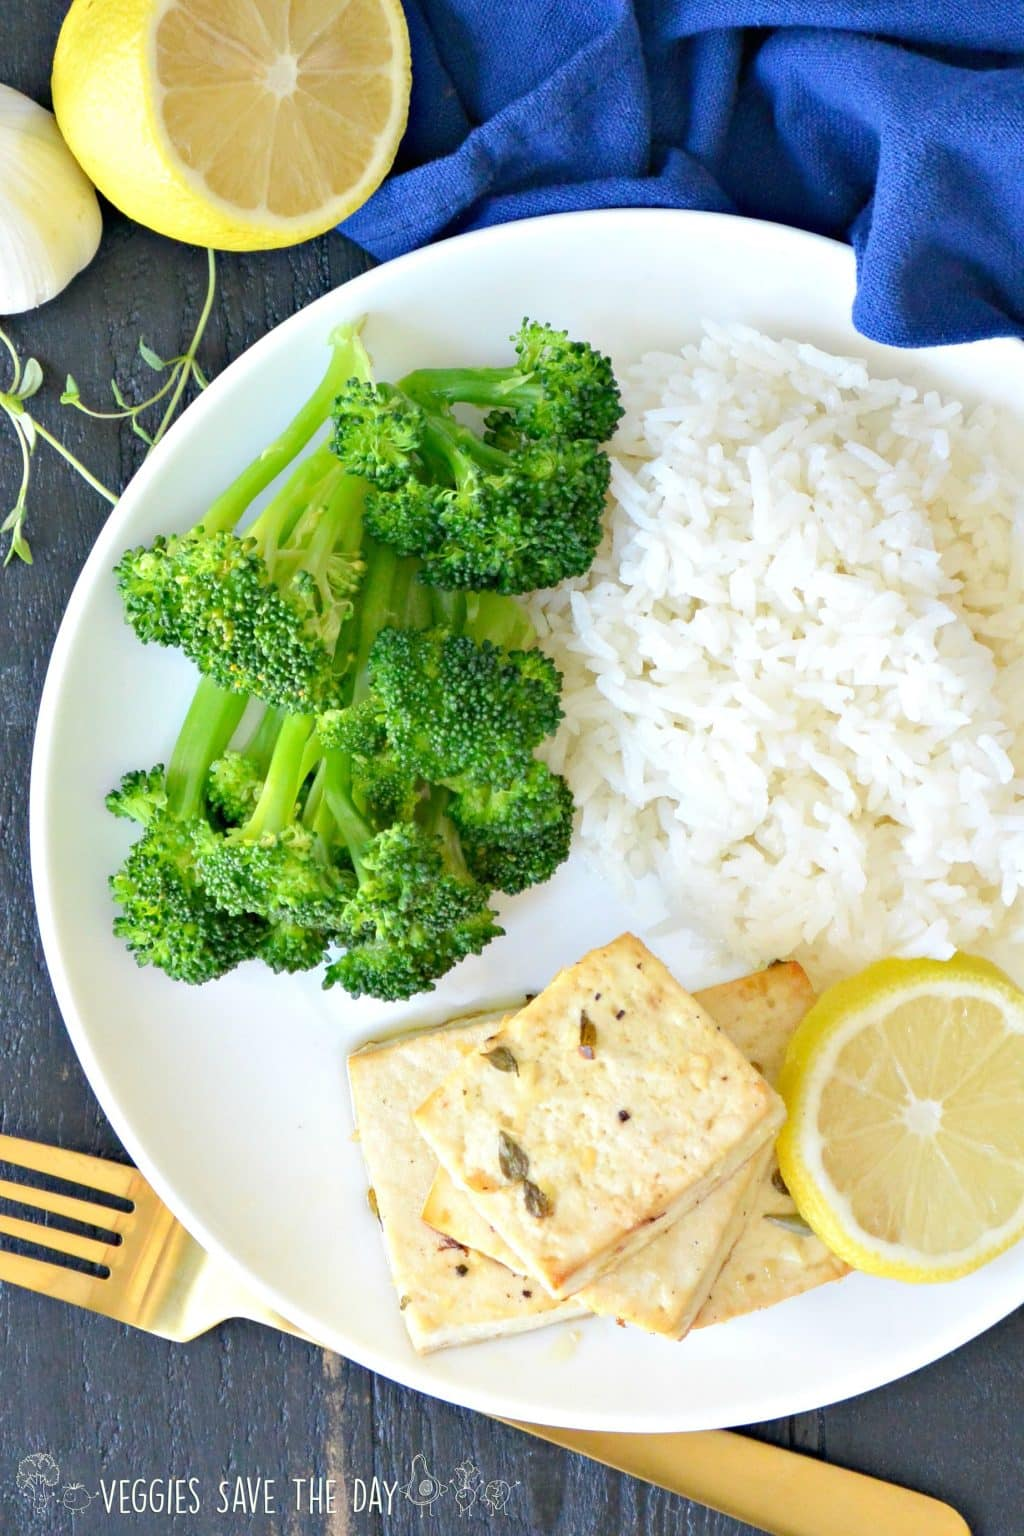 Overhead of plate of Lemon Baked Tofu served with broccoli and rice.